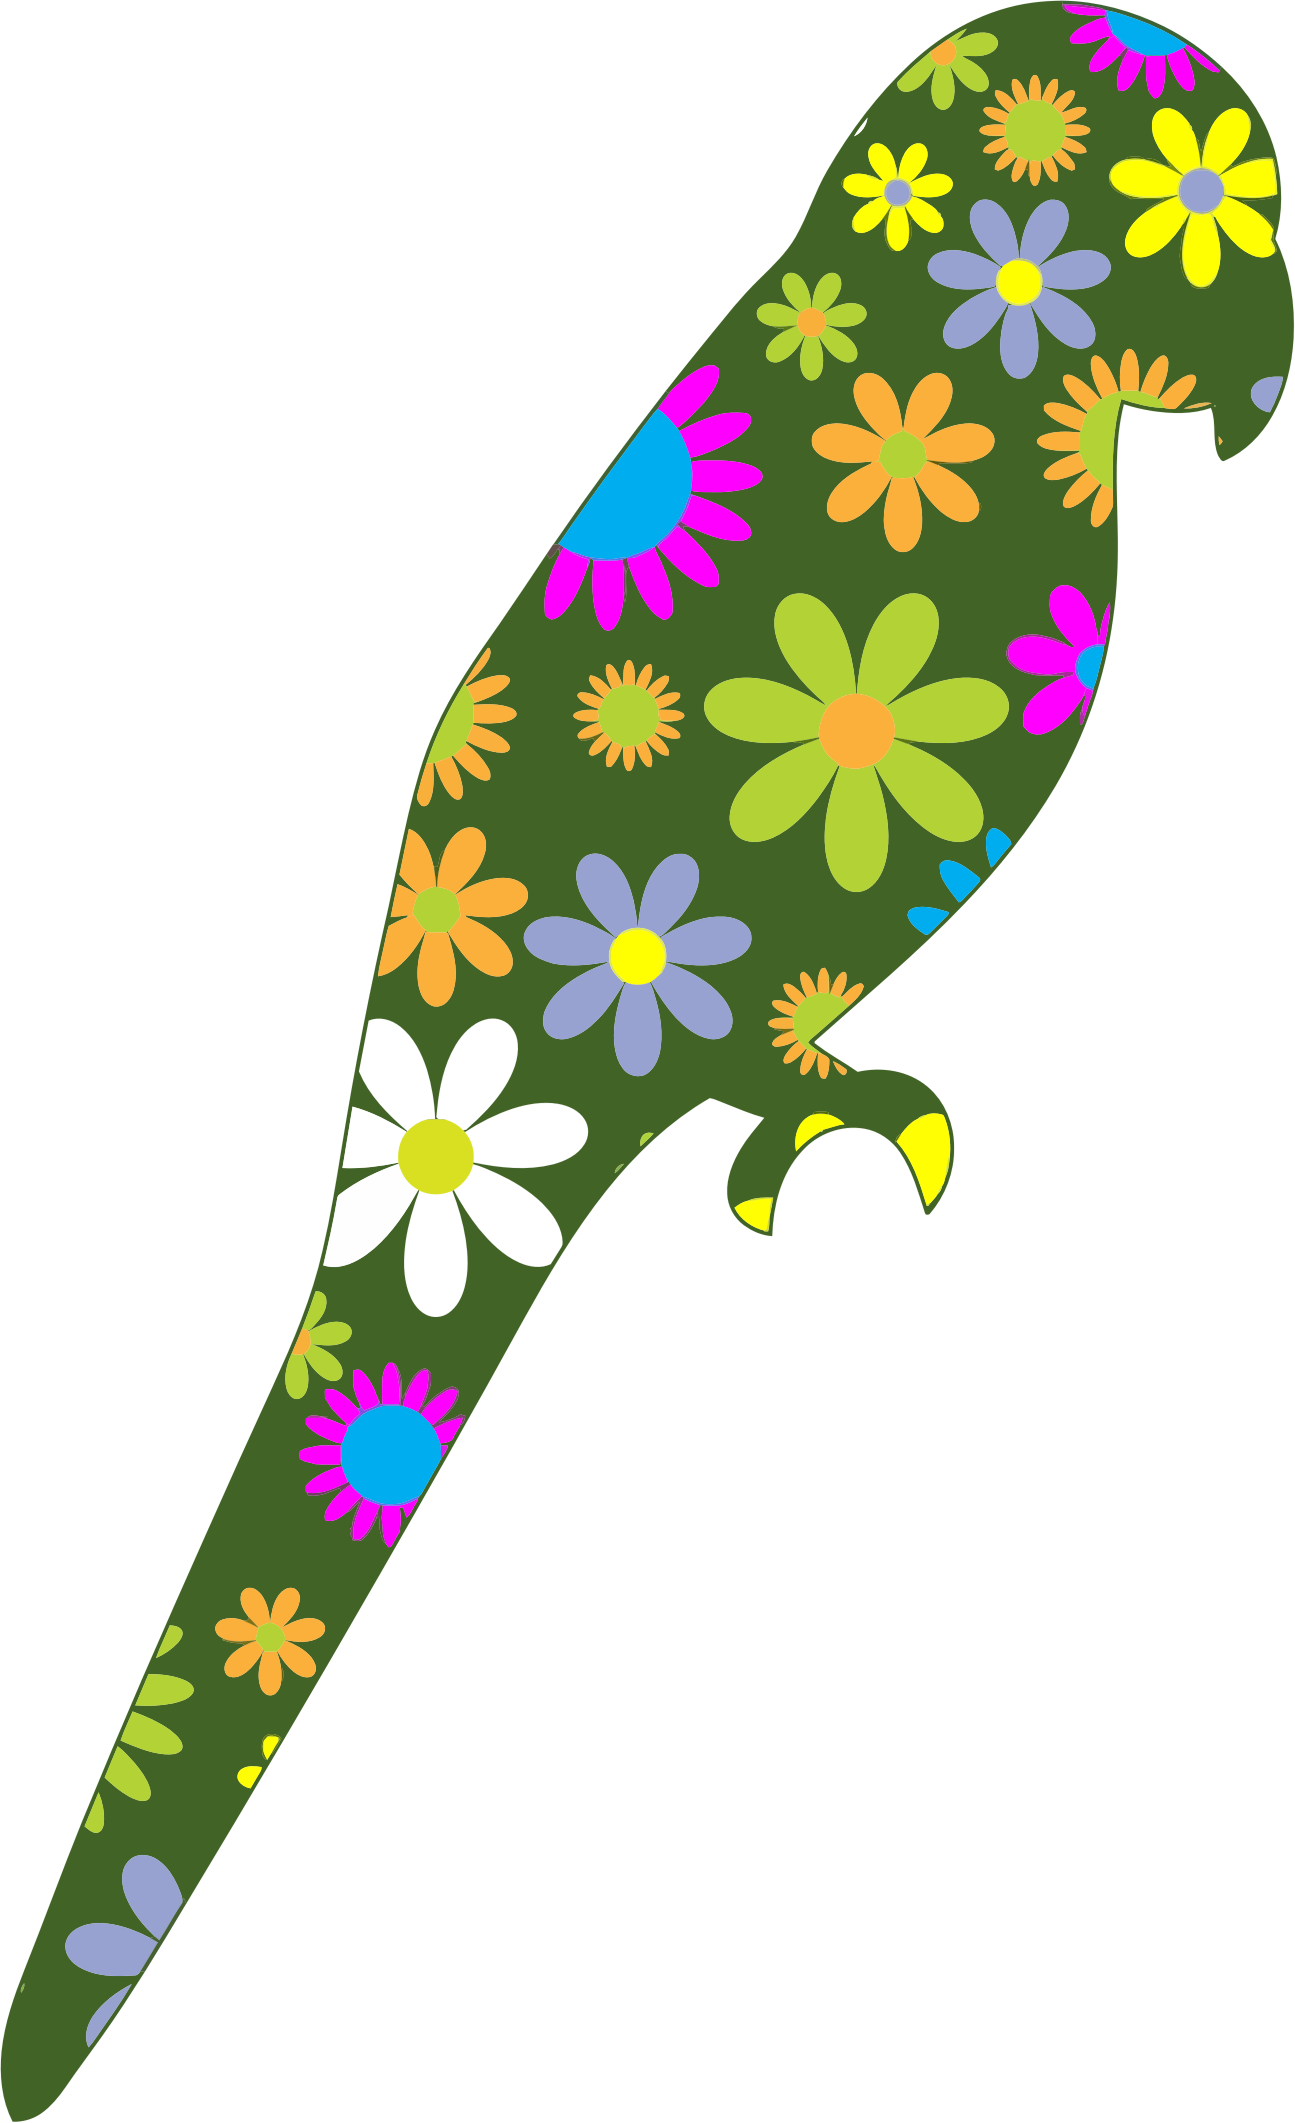 Retro Floral Parrot by GDJ